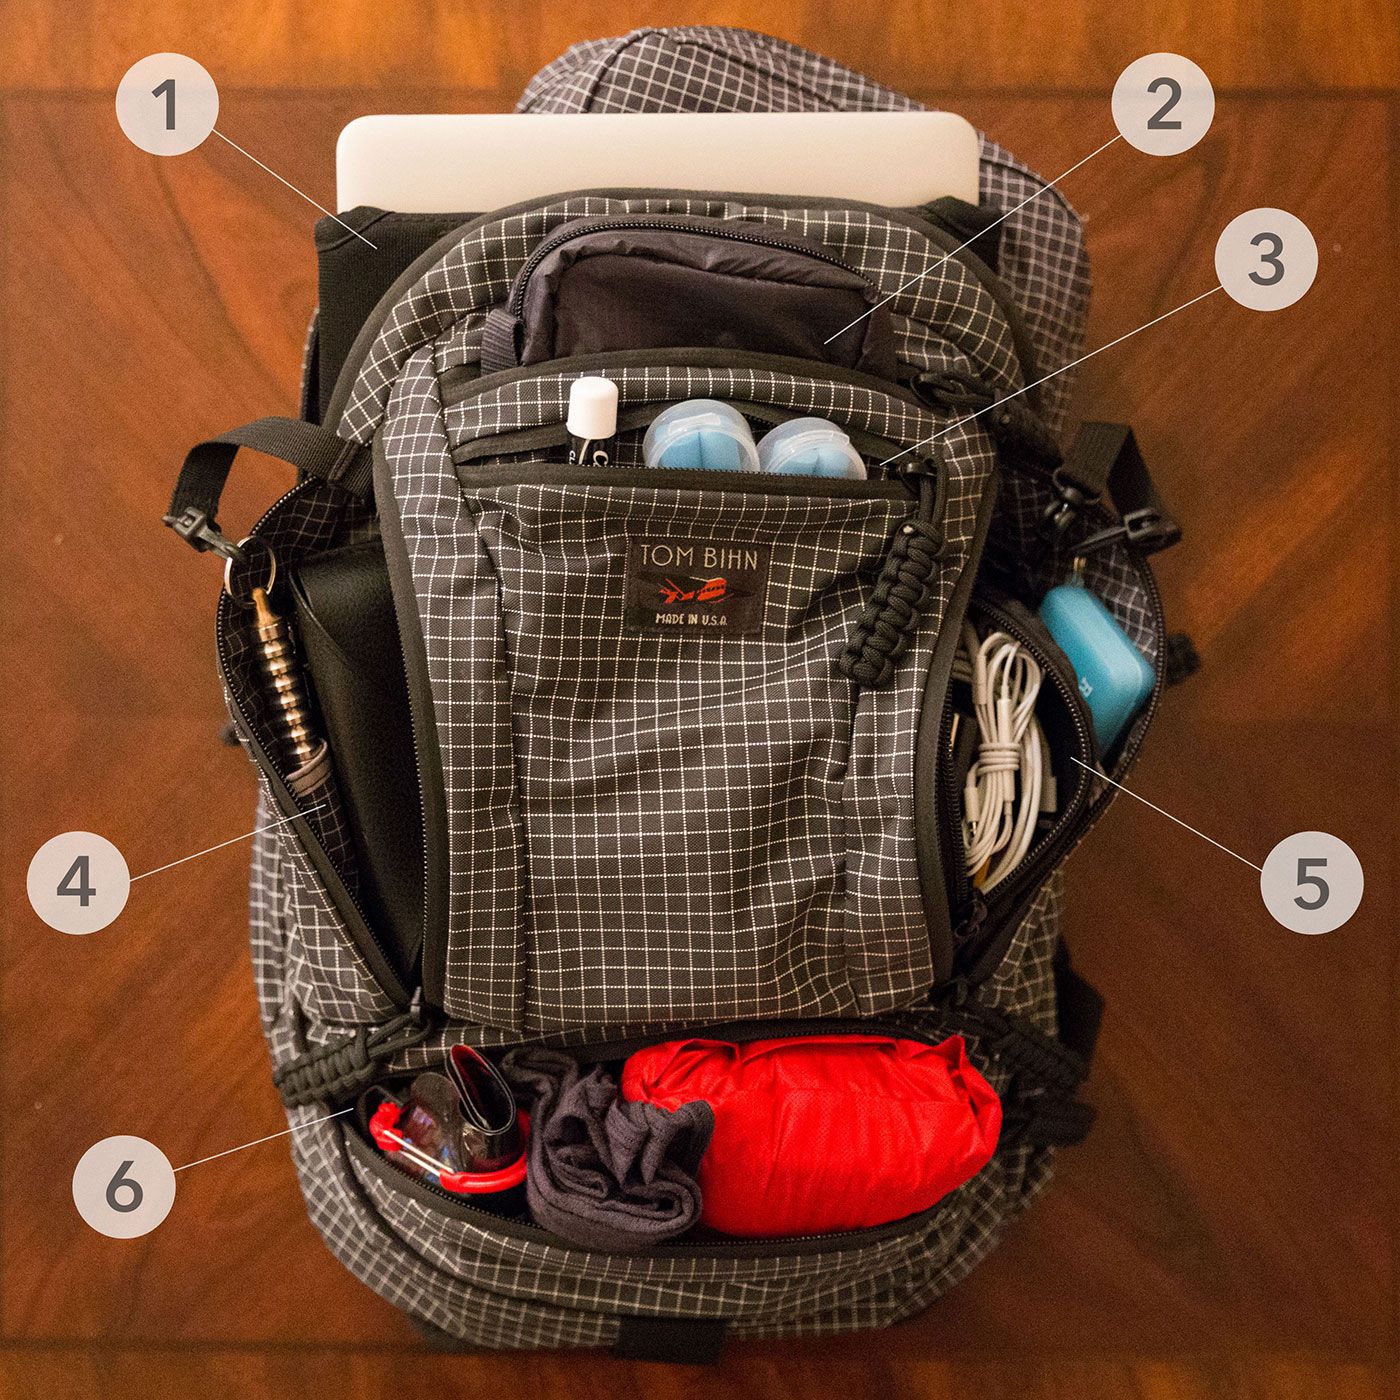 Ultralight Packing List How To Pack Light Amp Travel With 1 Bag